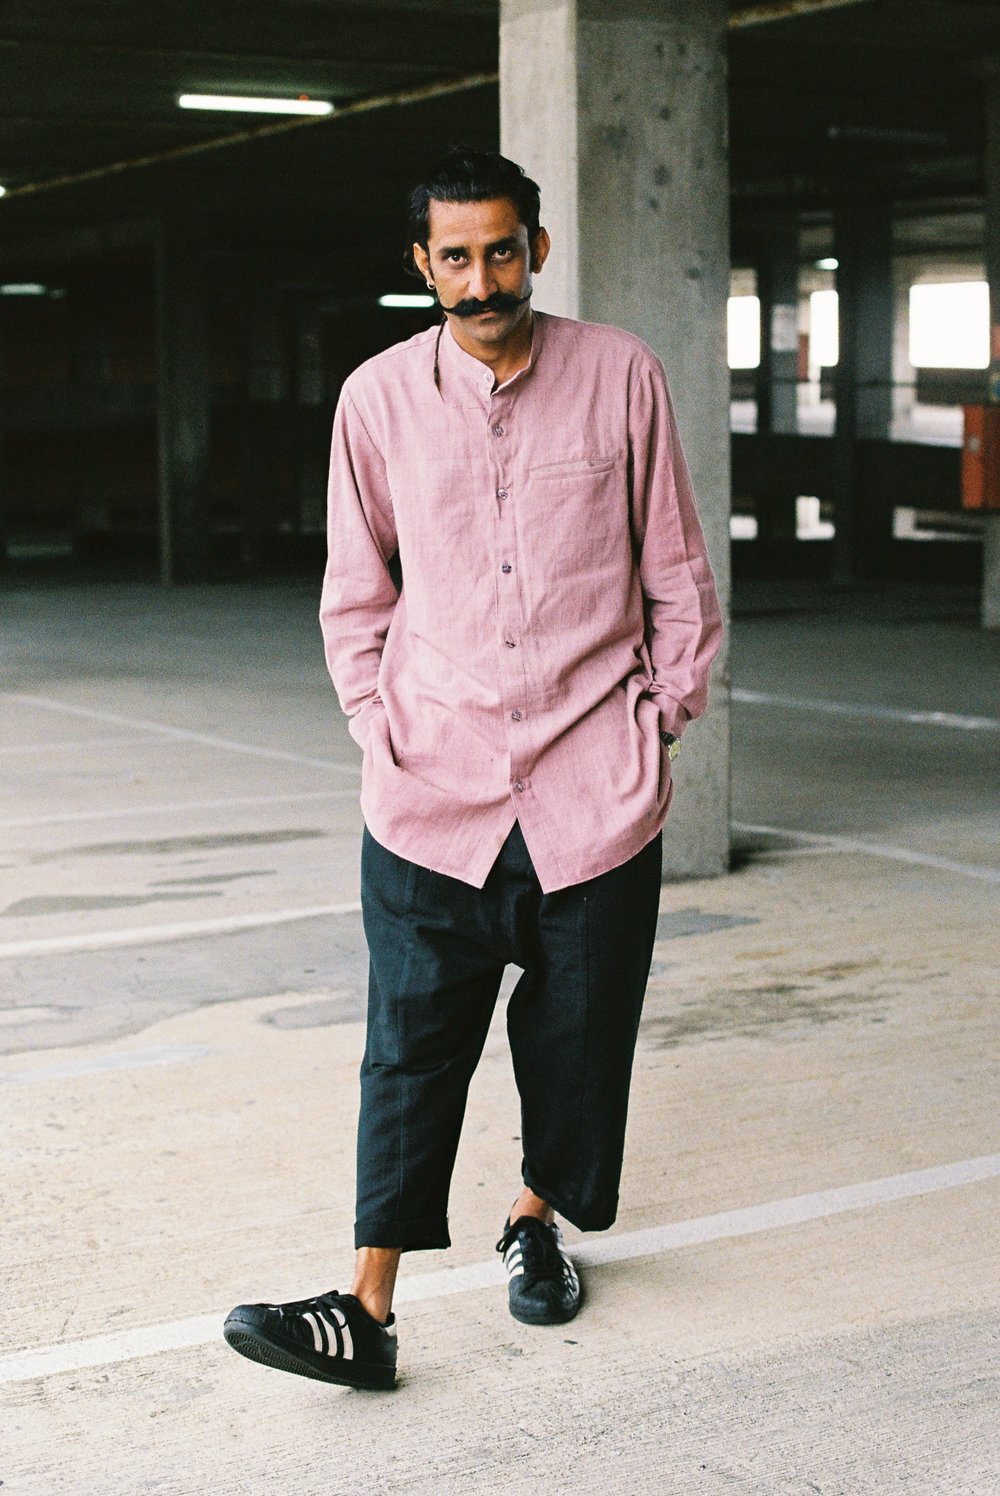 pinkshirtblackpants-5.jpg